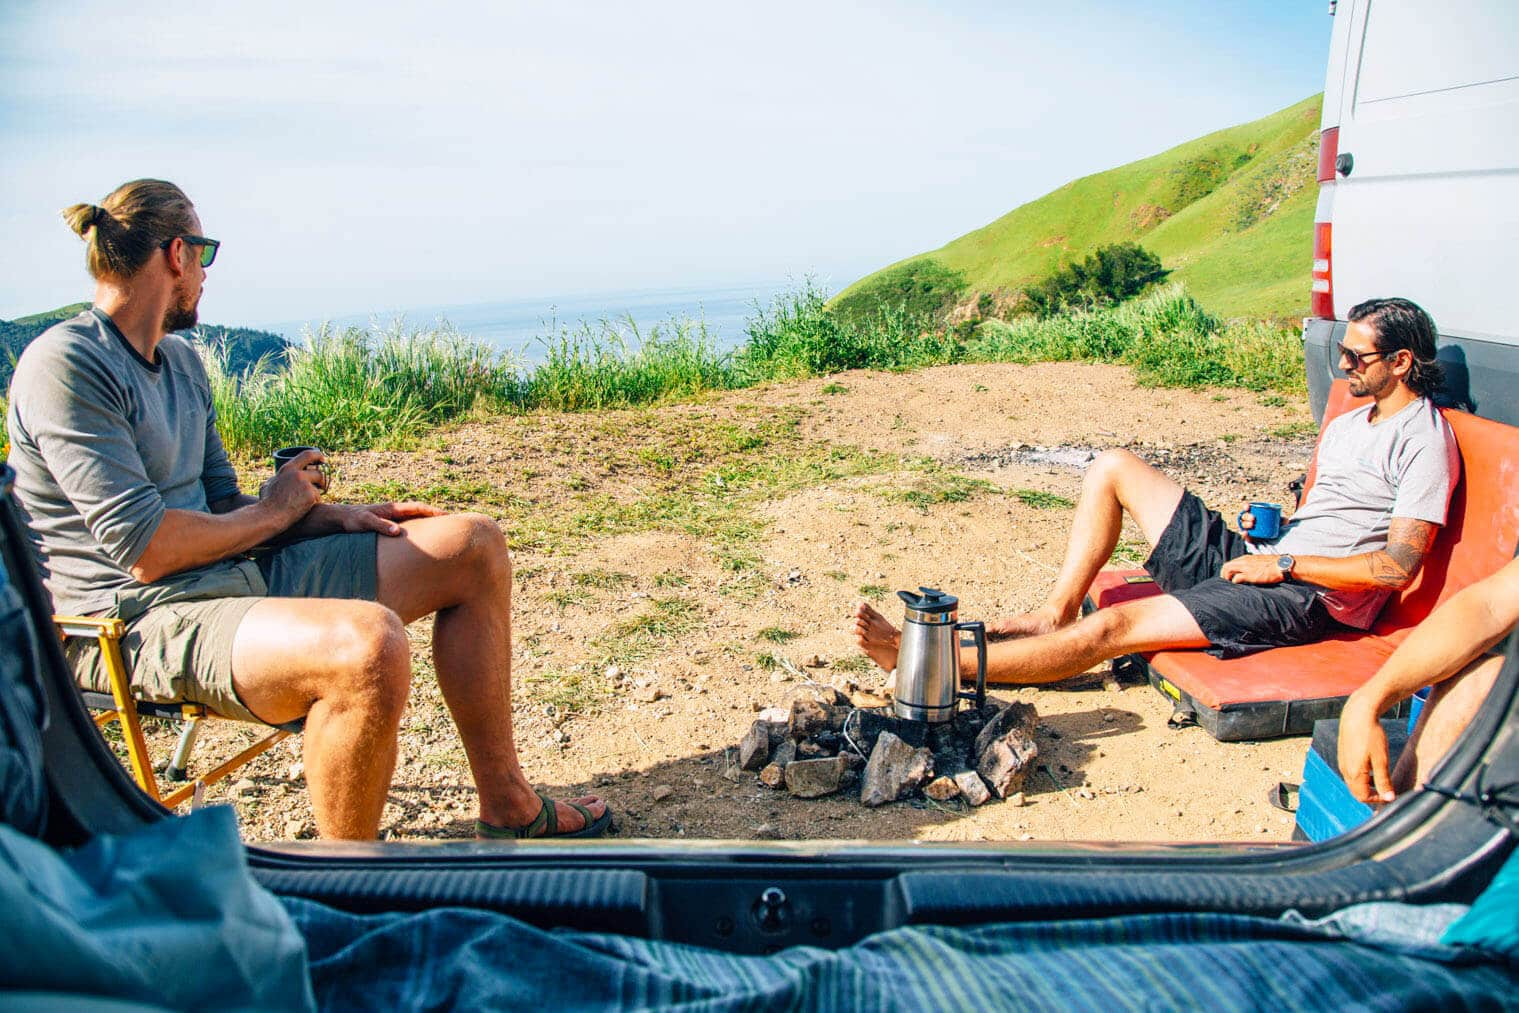 Find out how you can camp for free in beautiful locations (like this spot in Big Sur, CA!) throughout the US and Canada in this free camping guide.